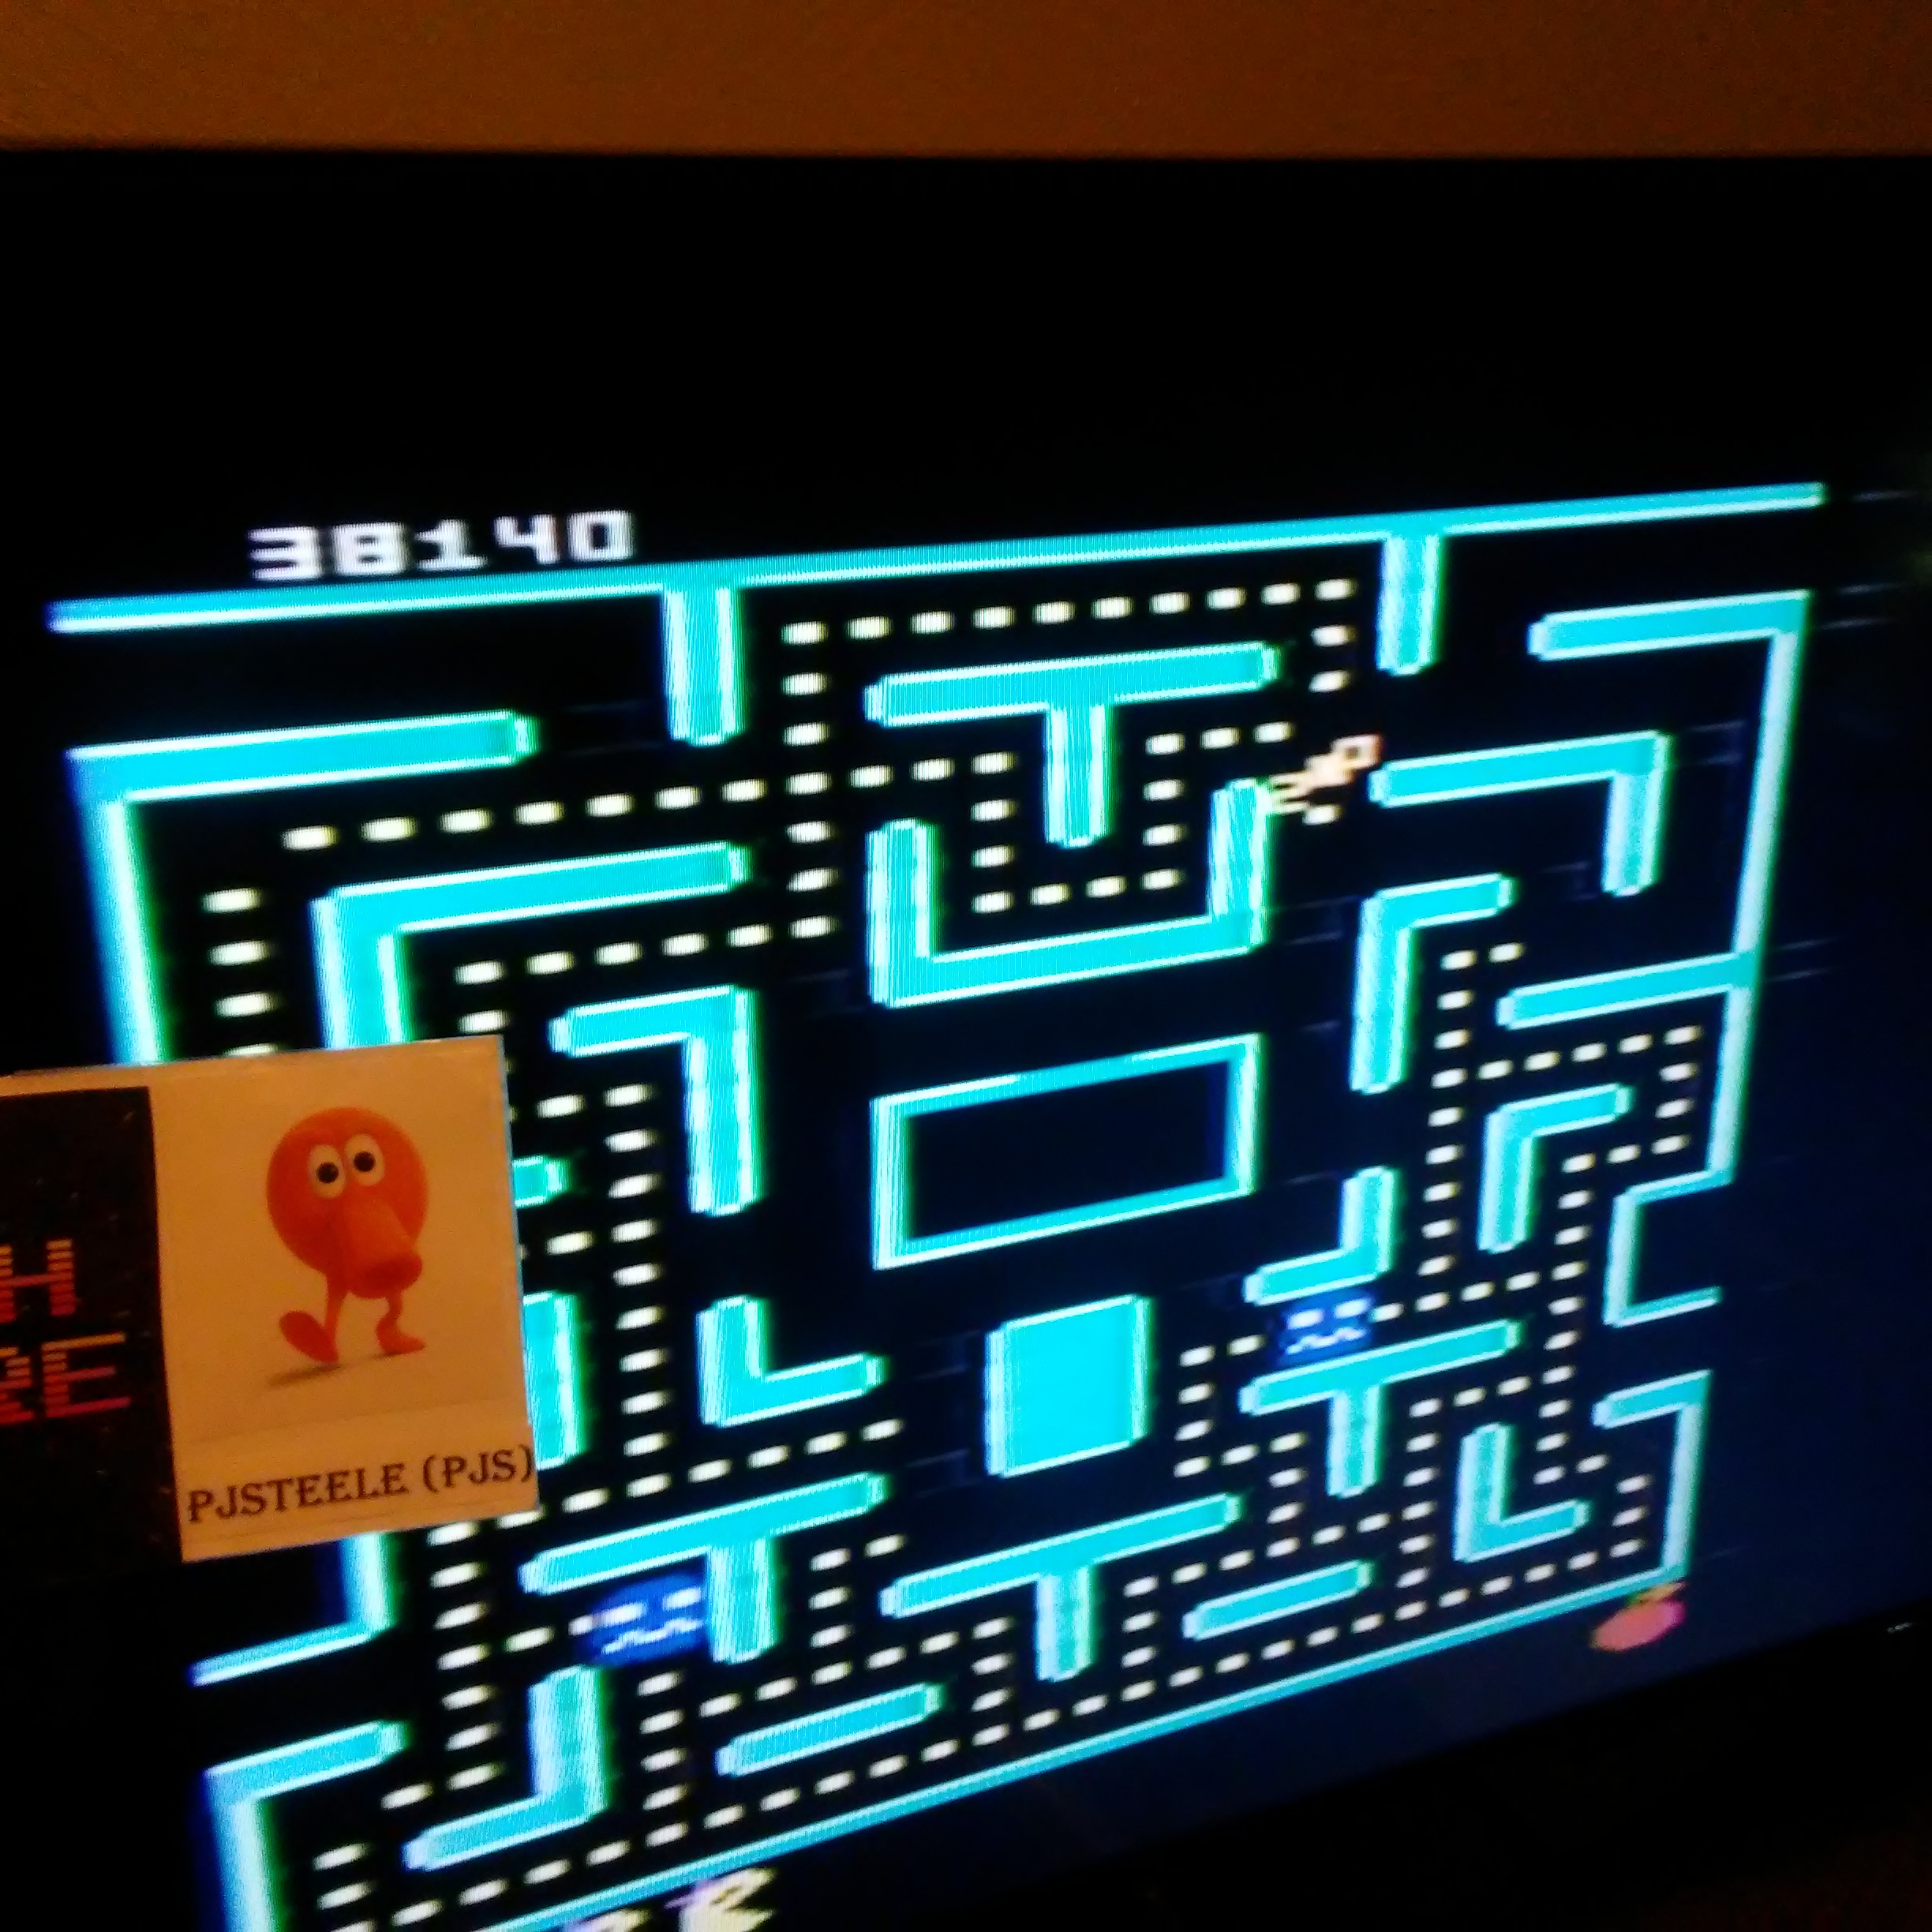 Pjsteele: Ms. Pac-Man: Orange Start (Atari 7800) 38,140 points on 2018-07-04 08:46:43